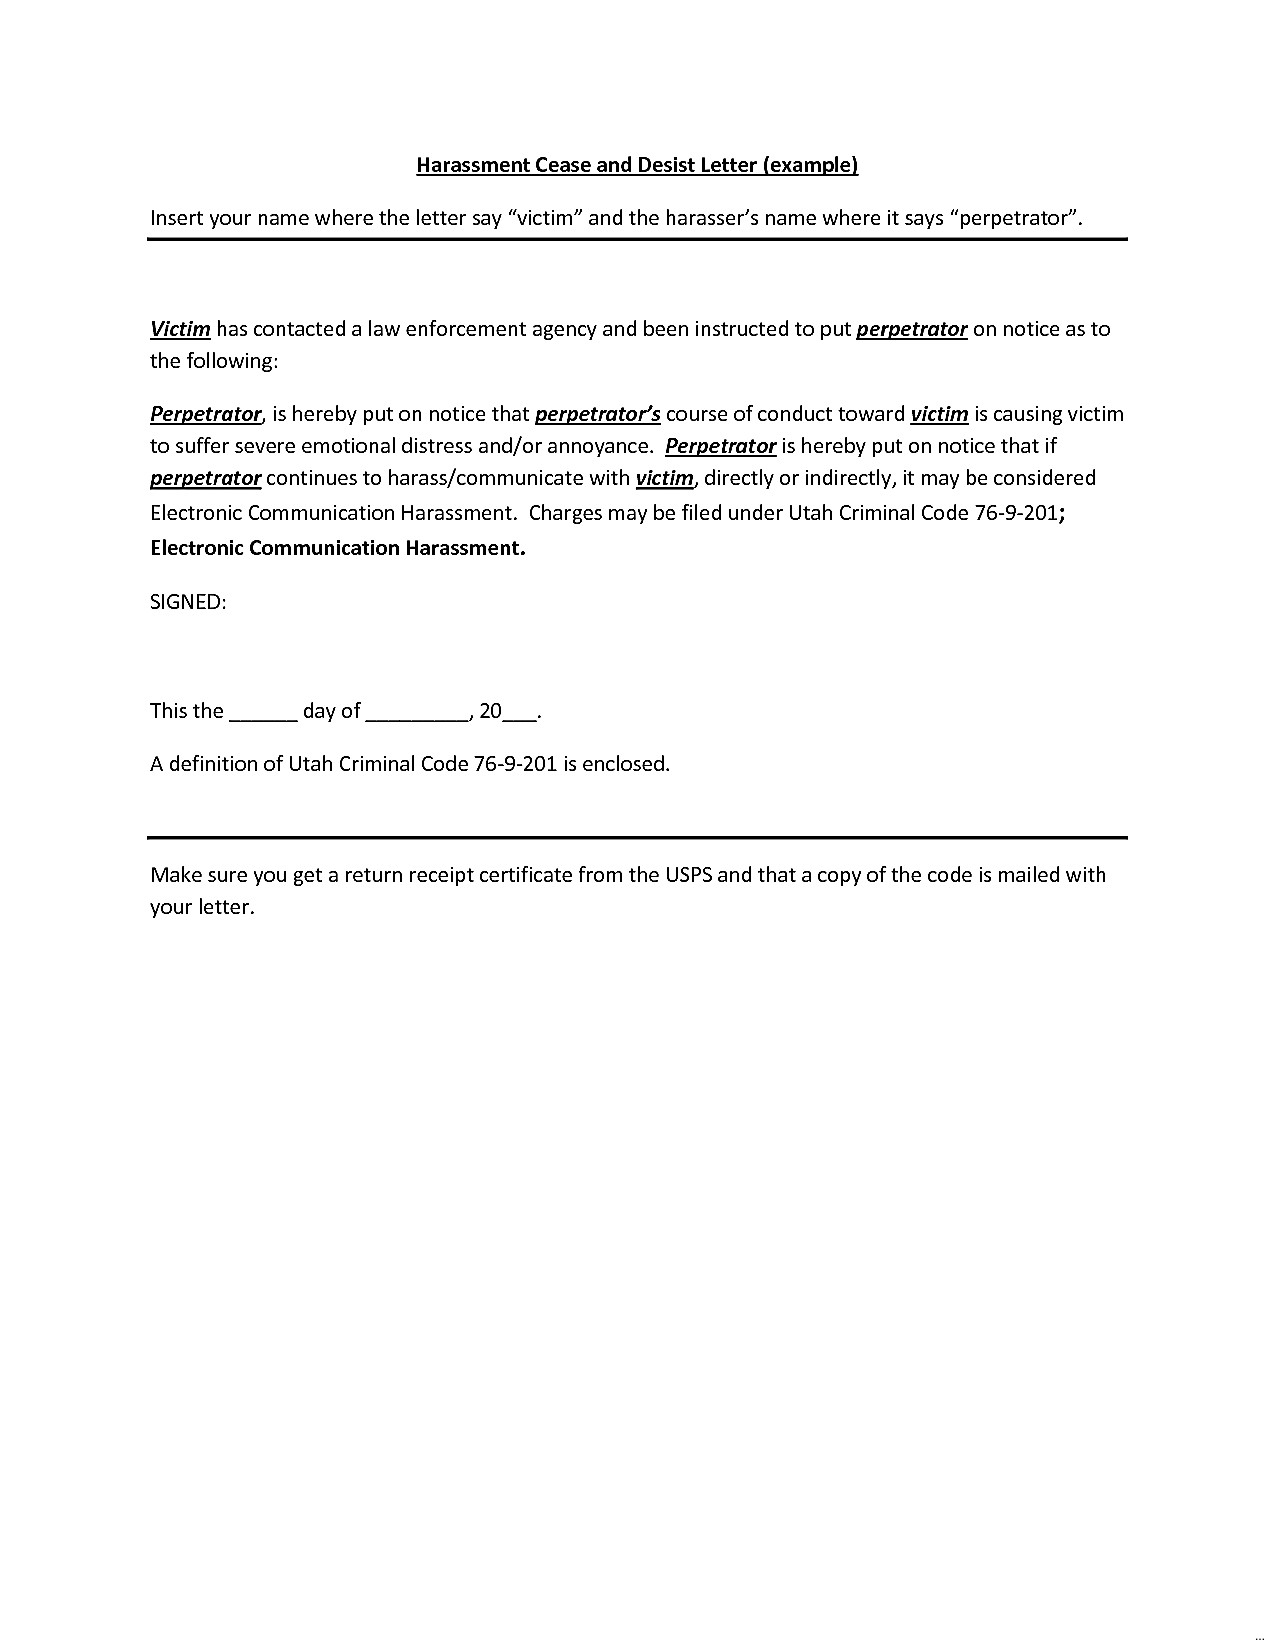 free cease and desist letter template for harassment cease and desist letter template itn gctu